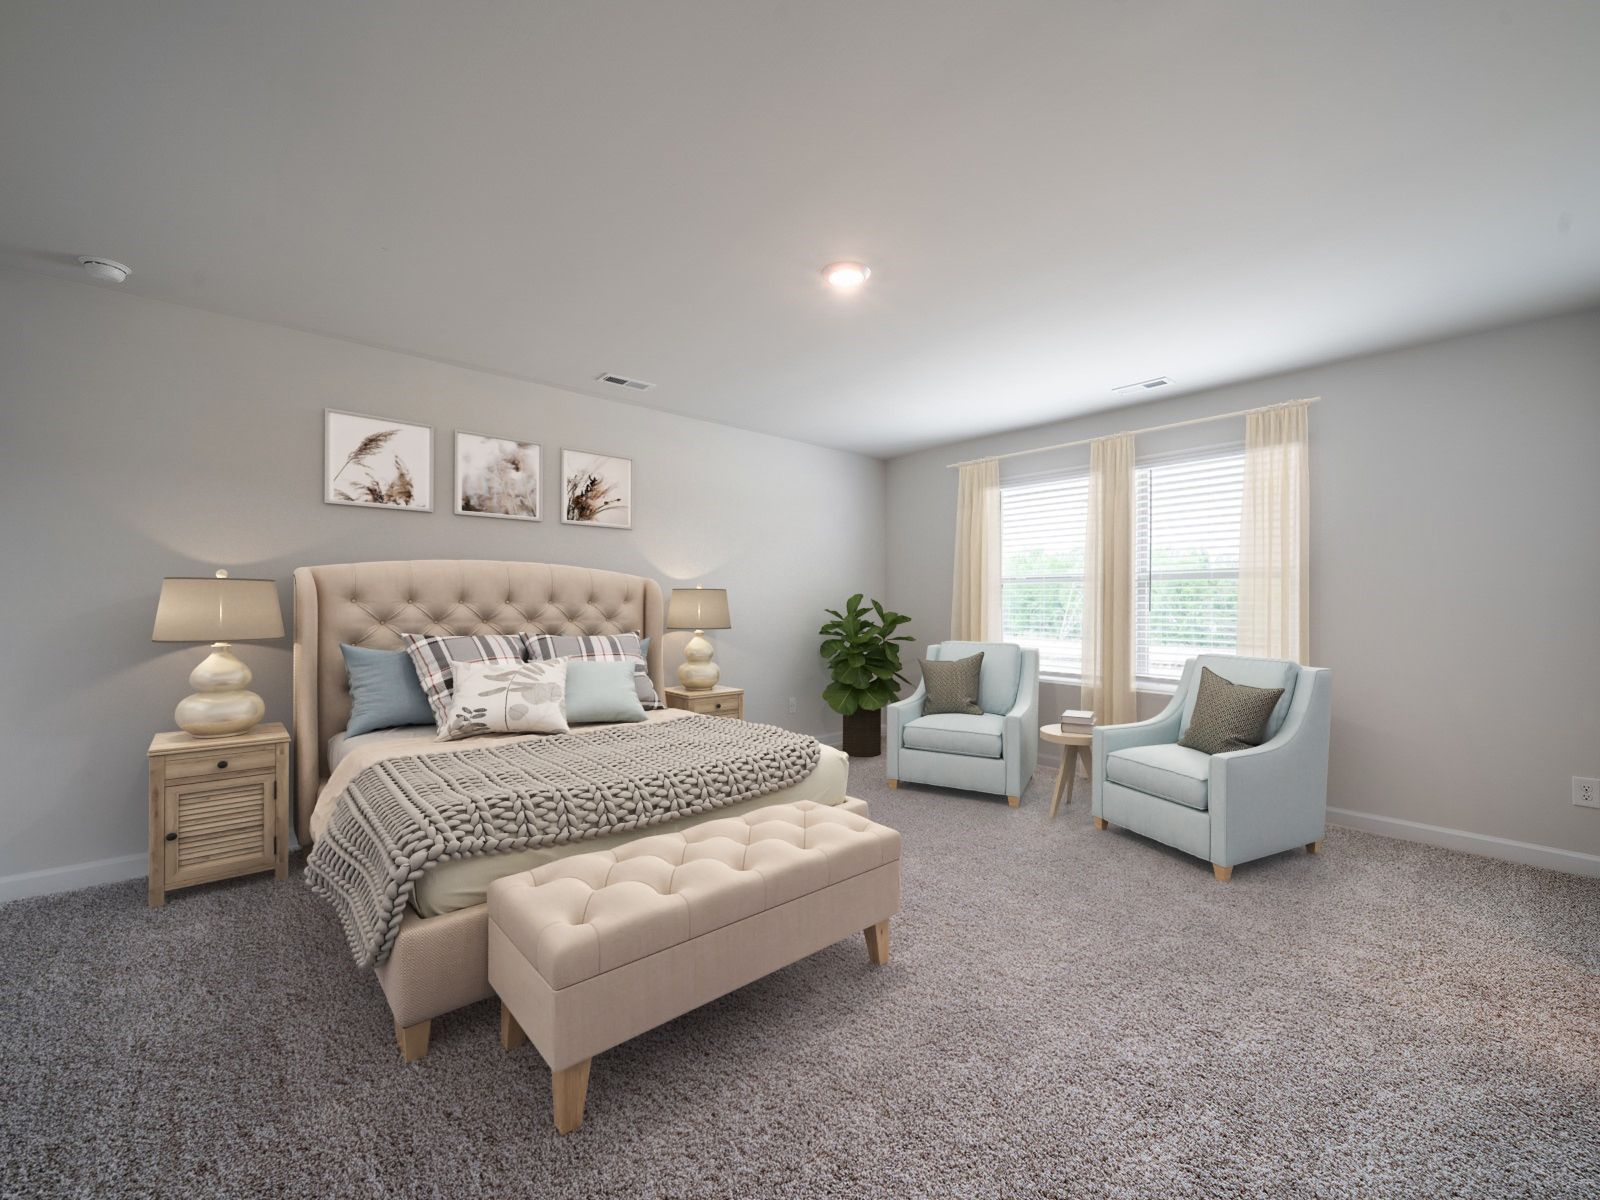 Bedroom featured in the Brentwood By Meritage Homes in Greenville-Spartanburg, SC